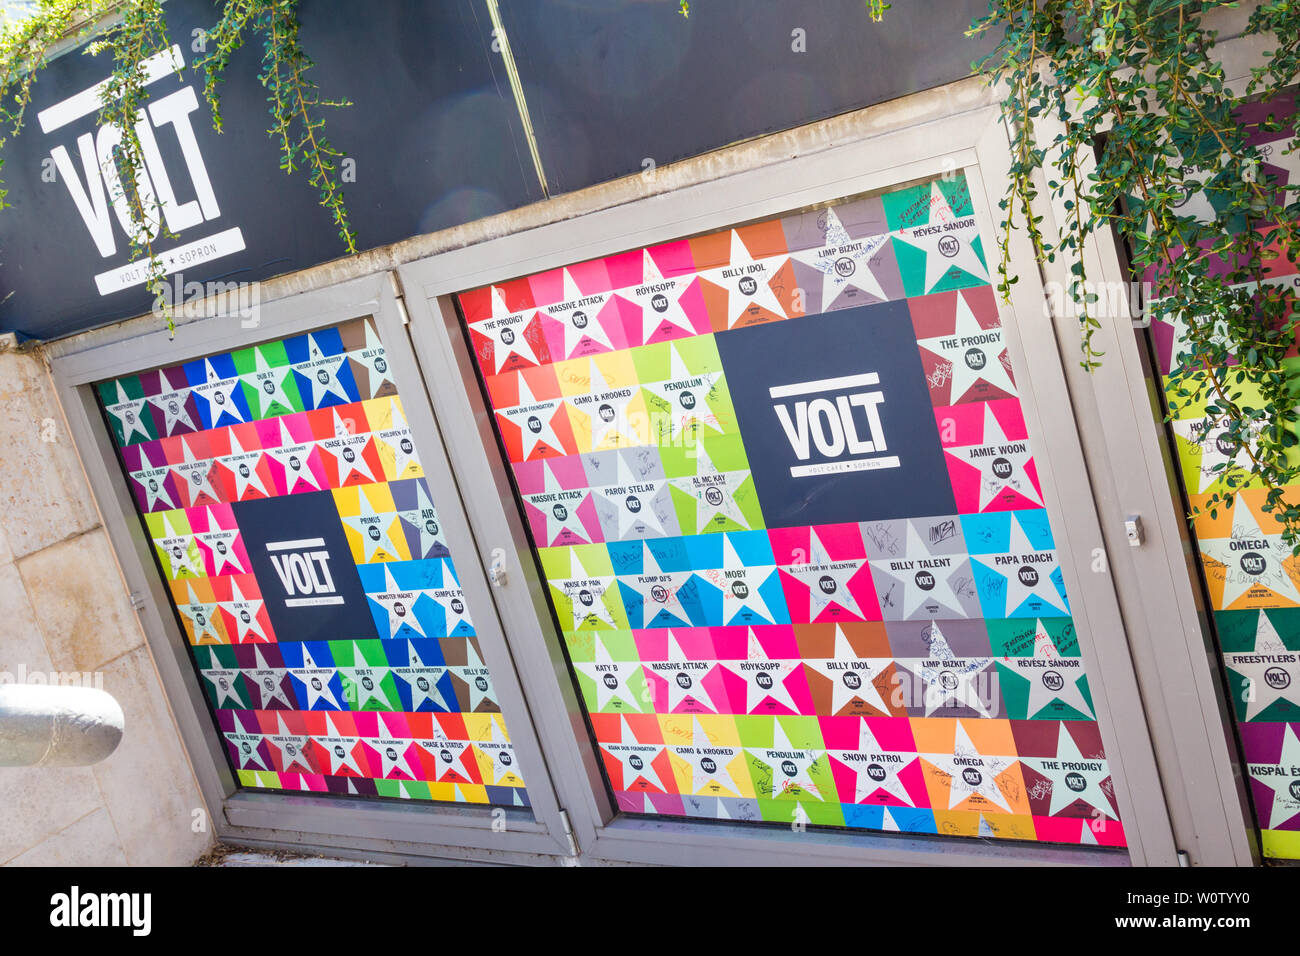 Volt Cafe city of stars wall with famous music groups in Sopron, Hungary Stock Photo